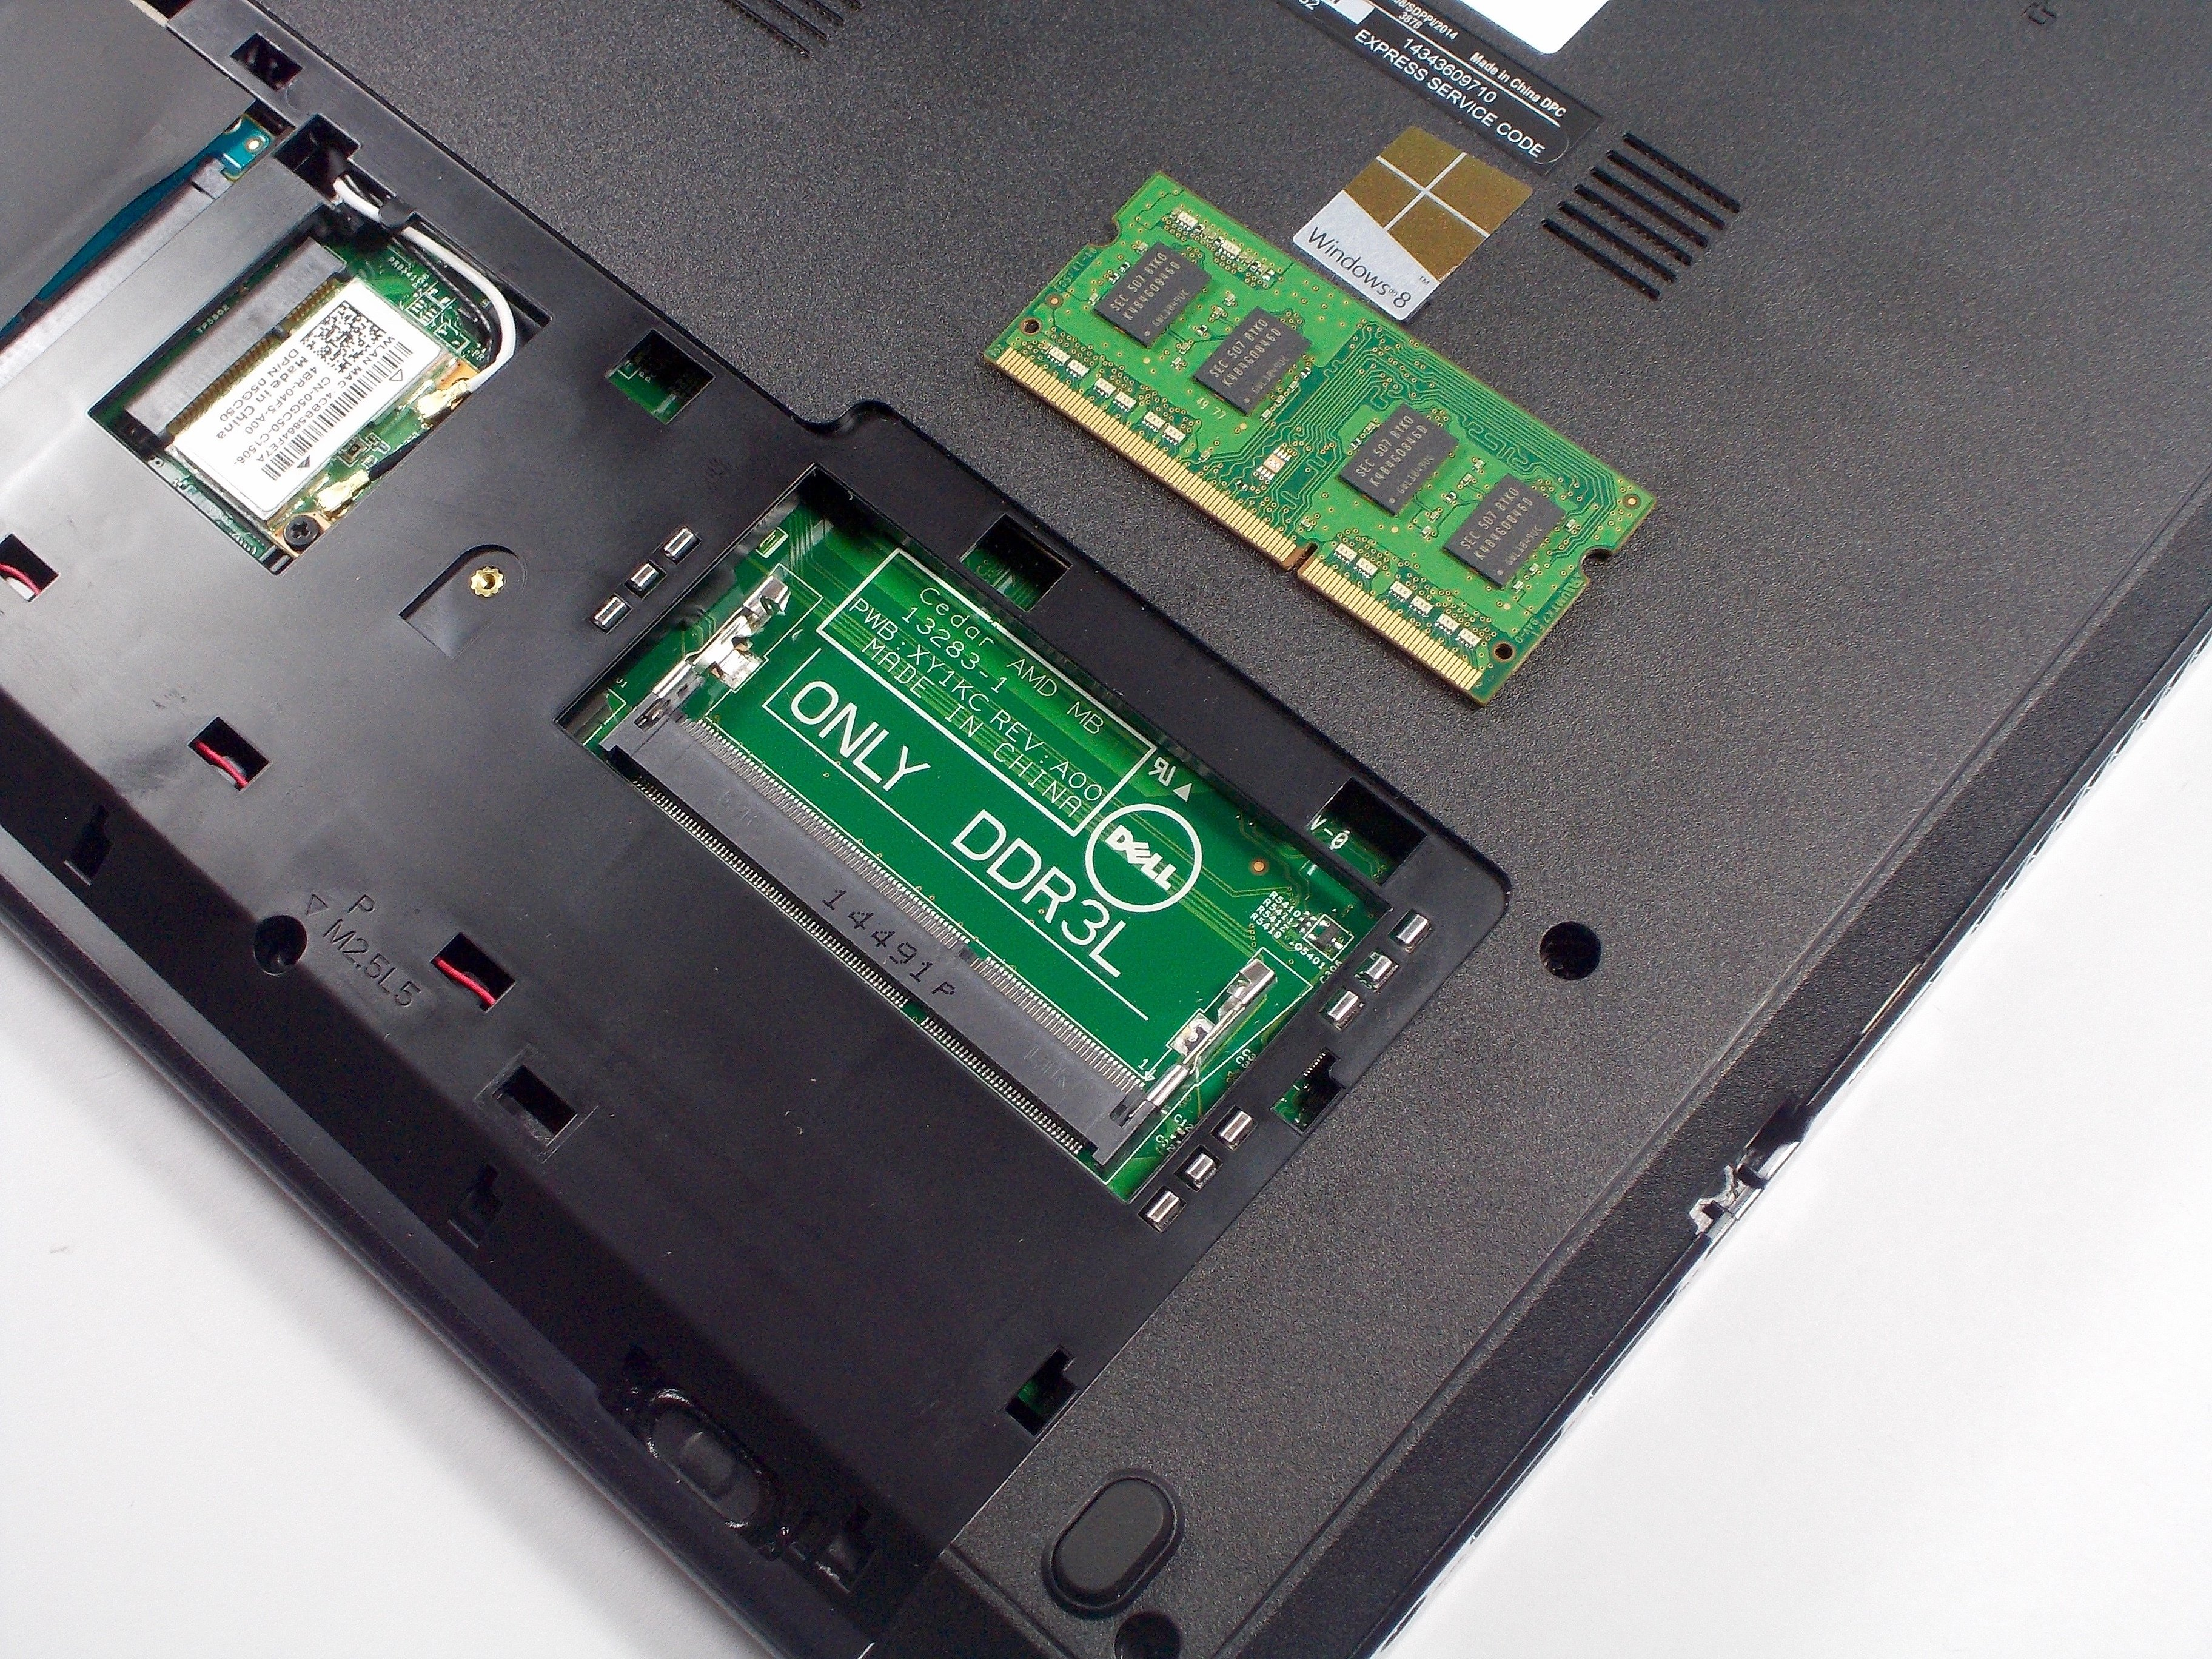 Dell Inspiron 15 Ram (Memory Module) Replacement - iFixit Repair Guide